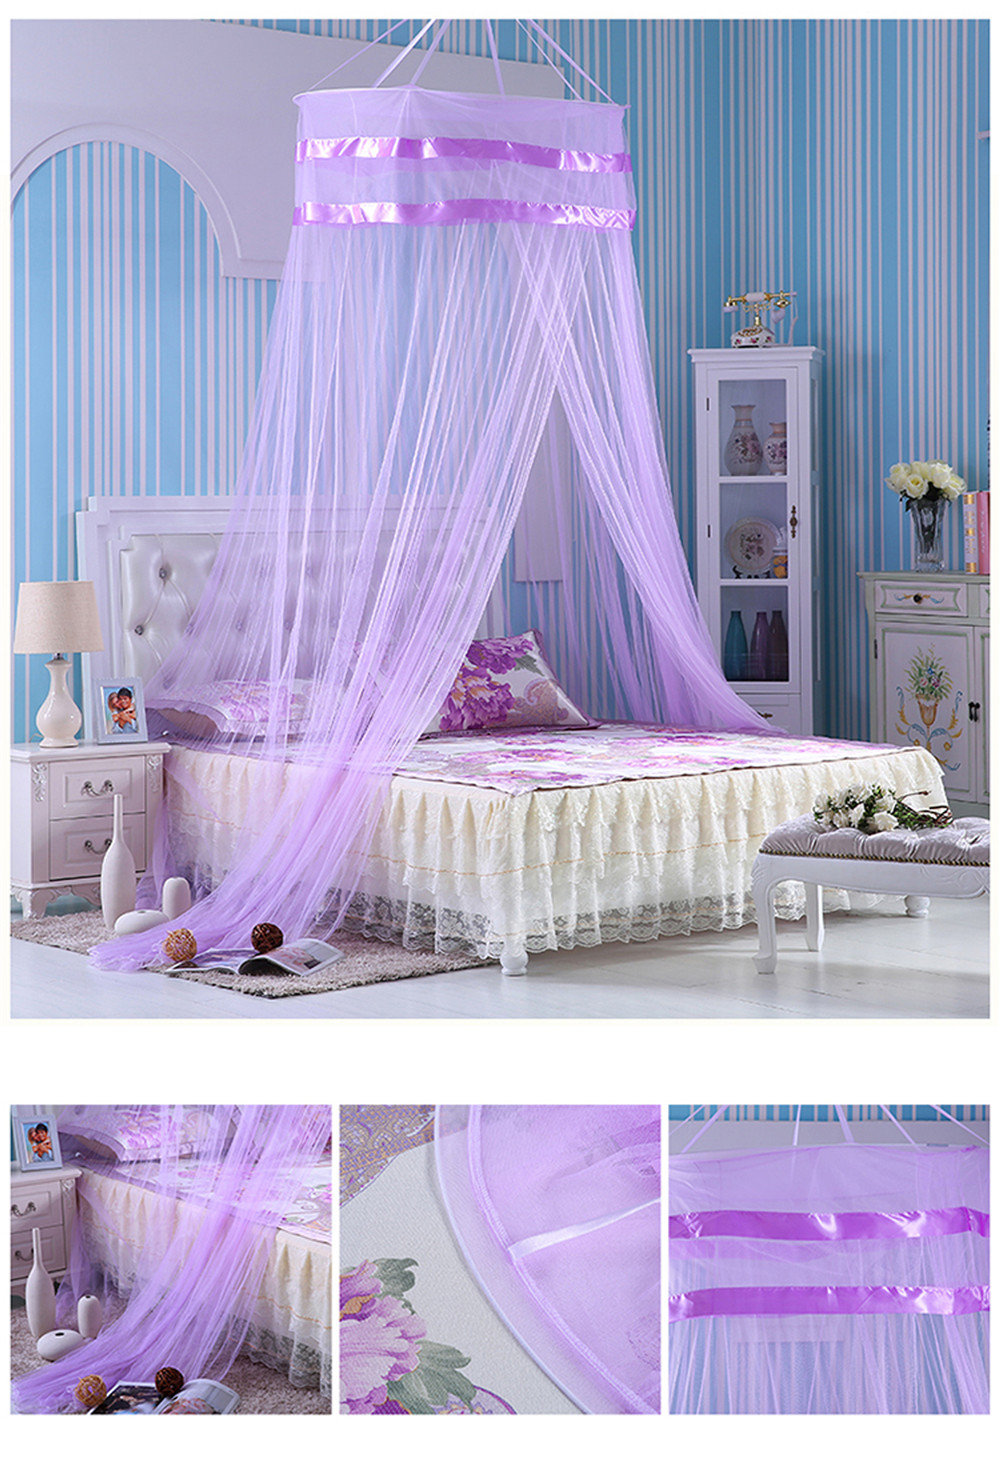 2017 Summer Style Romantic Round Lace Curtain Dome Bed Canopy Netting Princess Mosquito Net Purple Brand New High Quality-in Mosquito Net from Home u0026 Garden ...  sc 1 st  AliExpress.com & 2017 Summer Style Romantic Round Lace Curtain Dome Bed Canopy ...